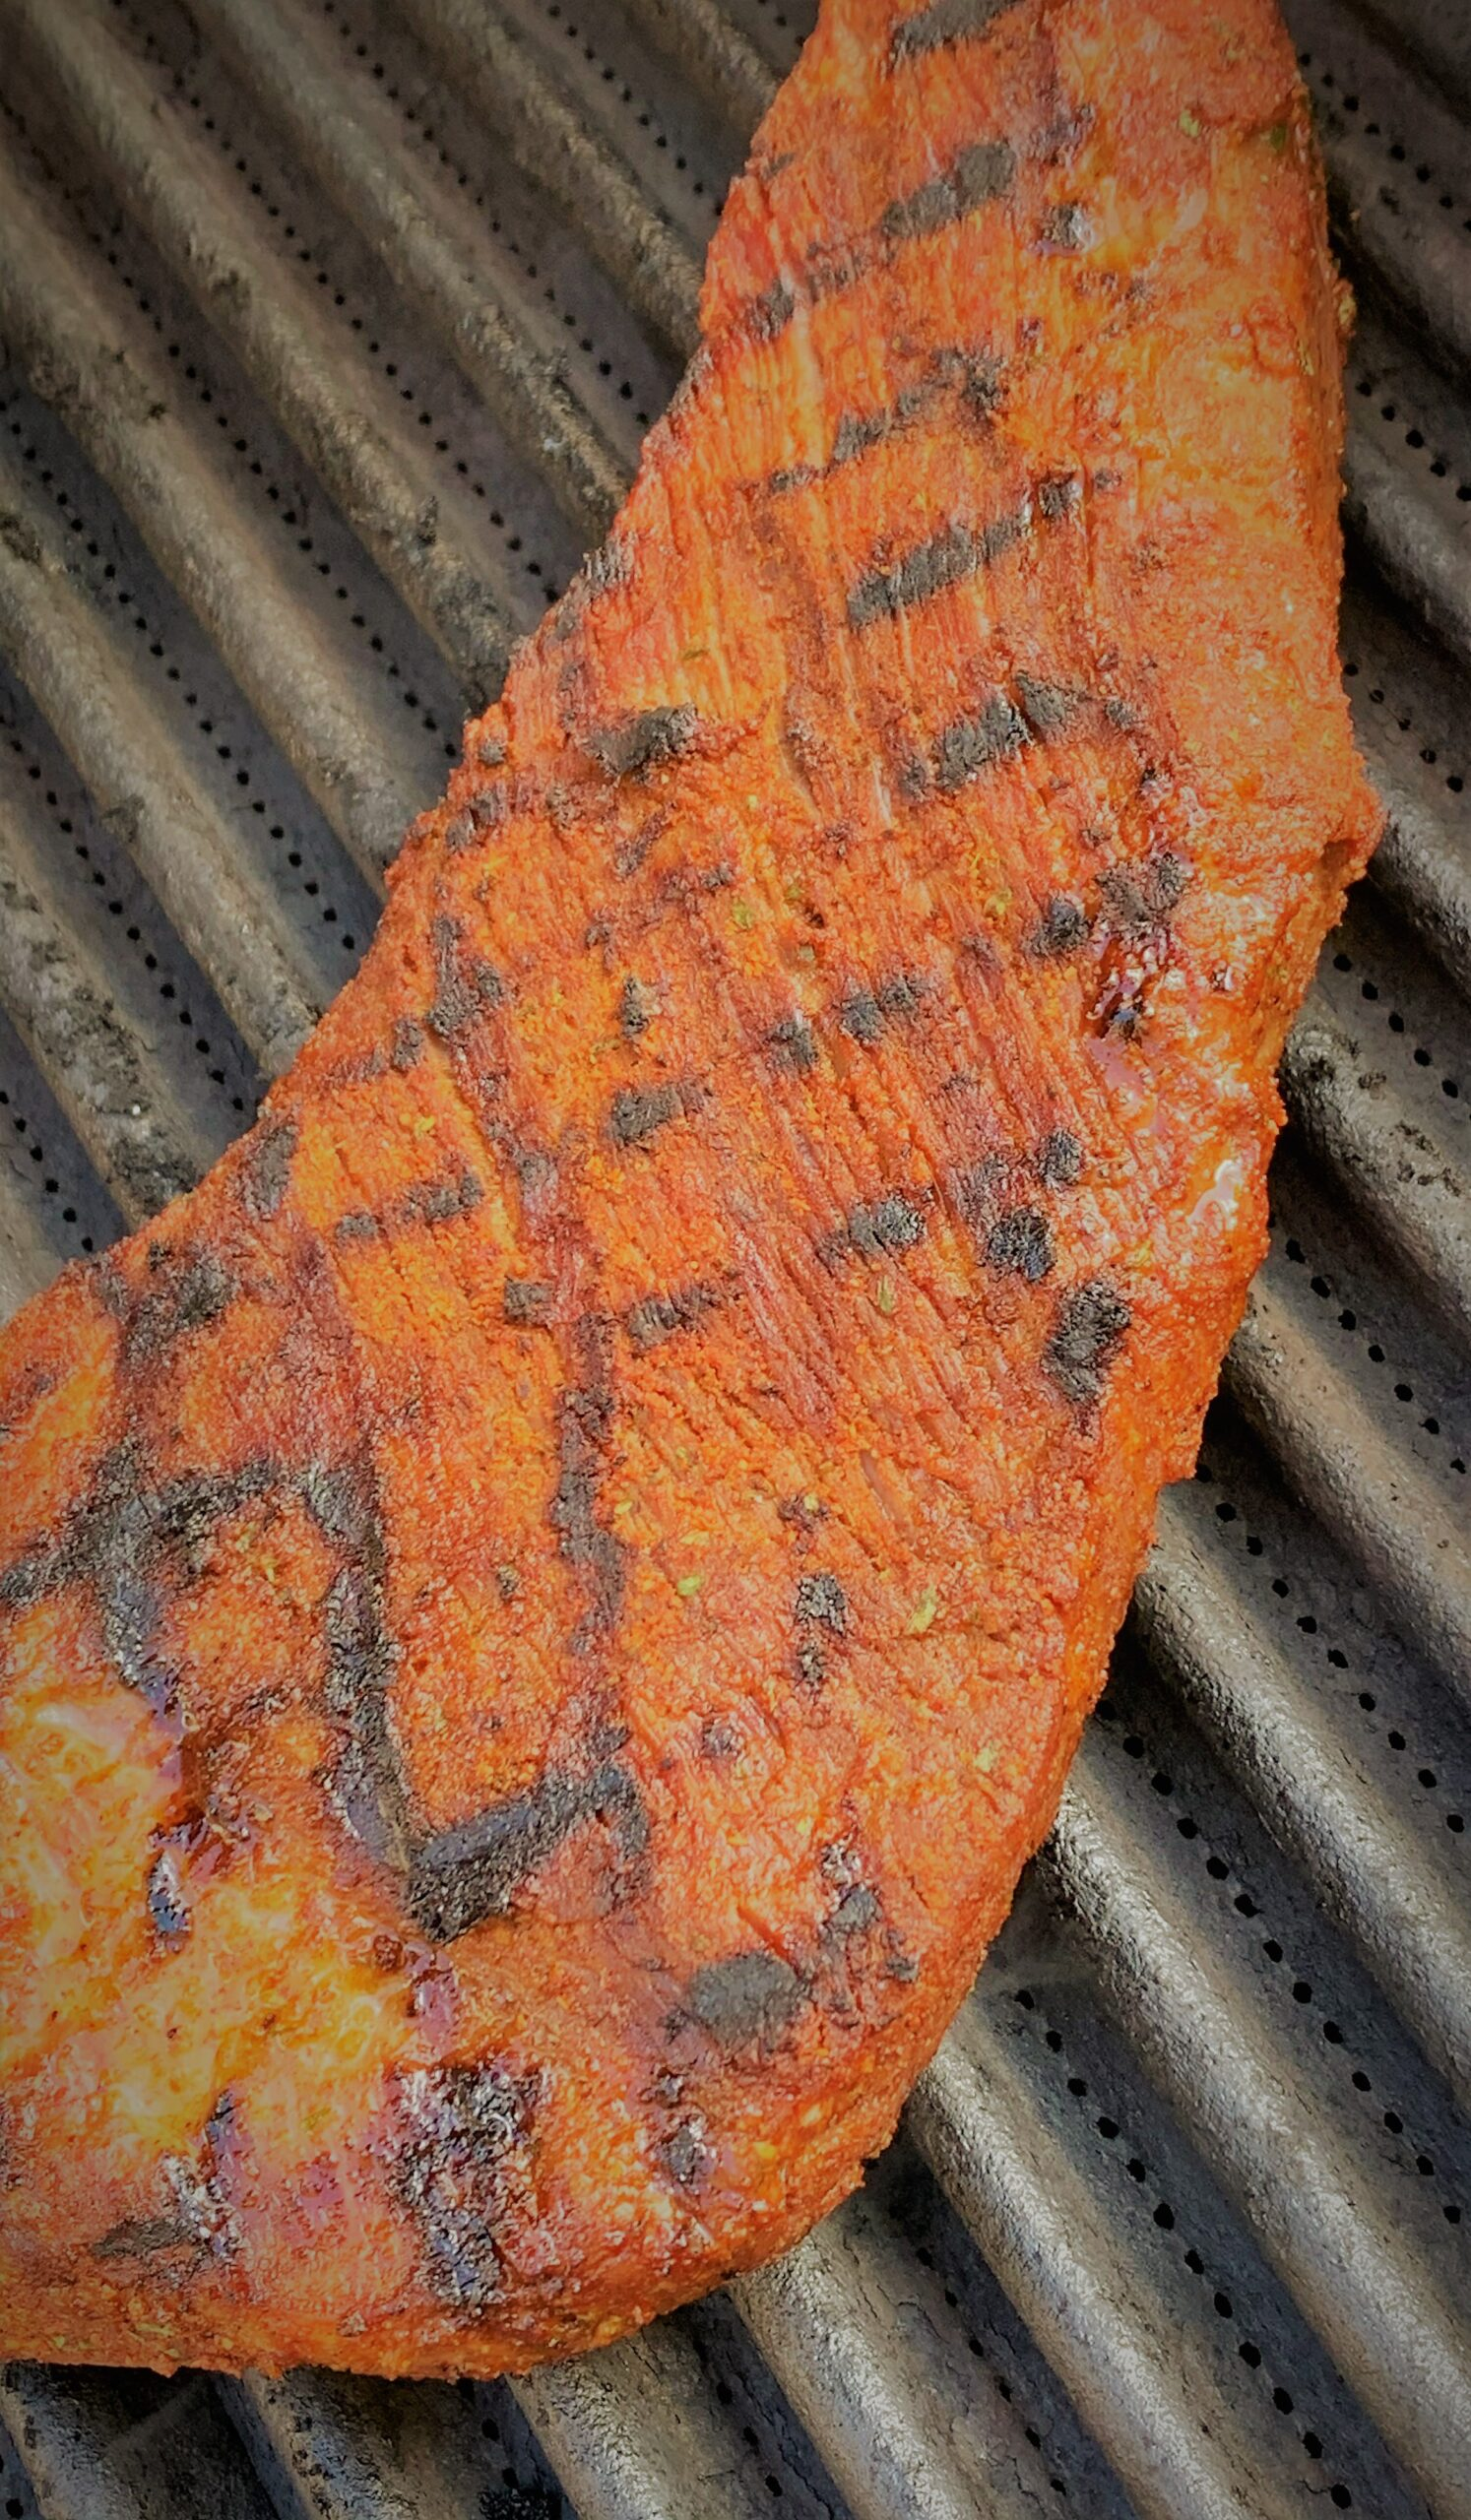 Our seared Santa Maria Style Tri-Tip moved to indirect heat to complete cooking